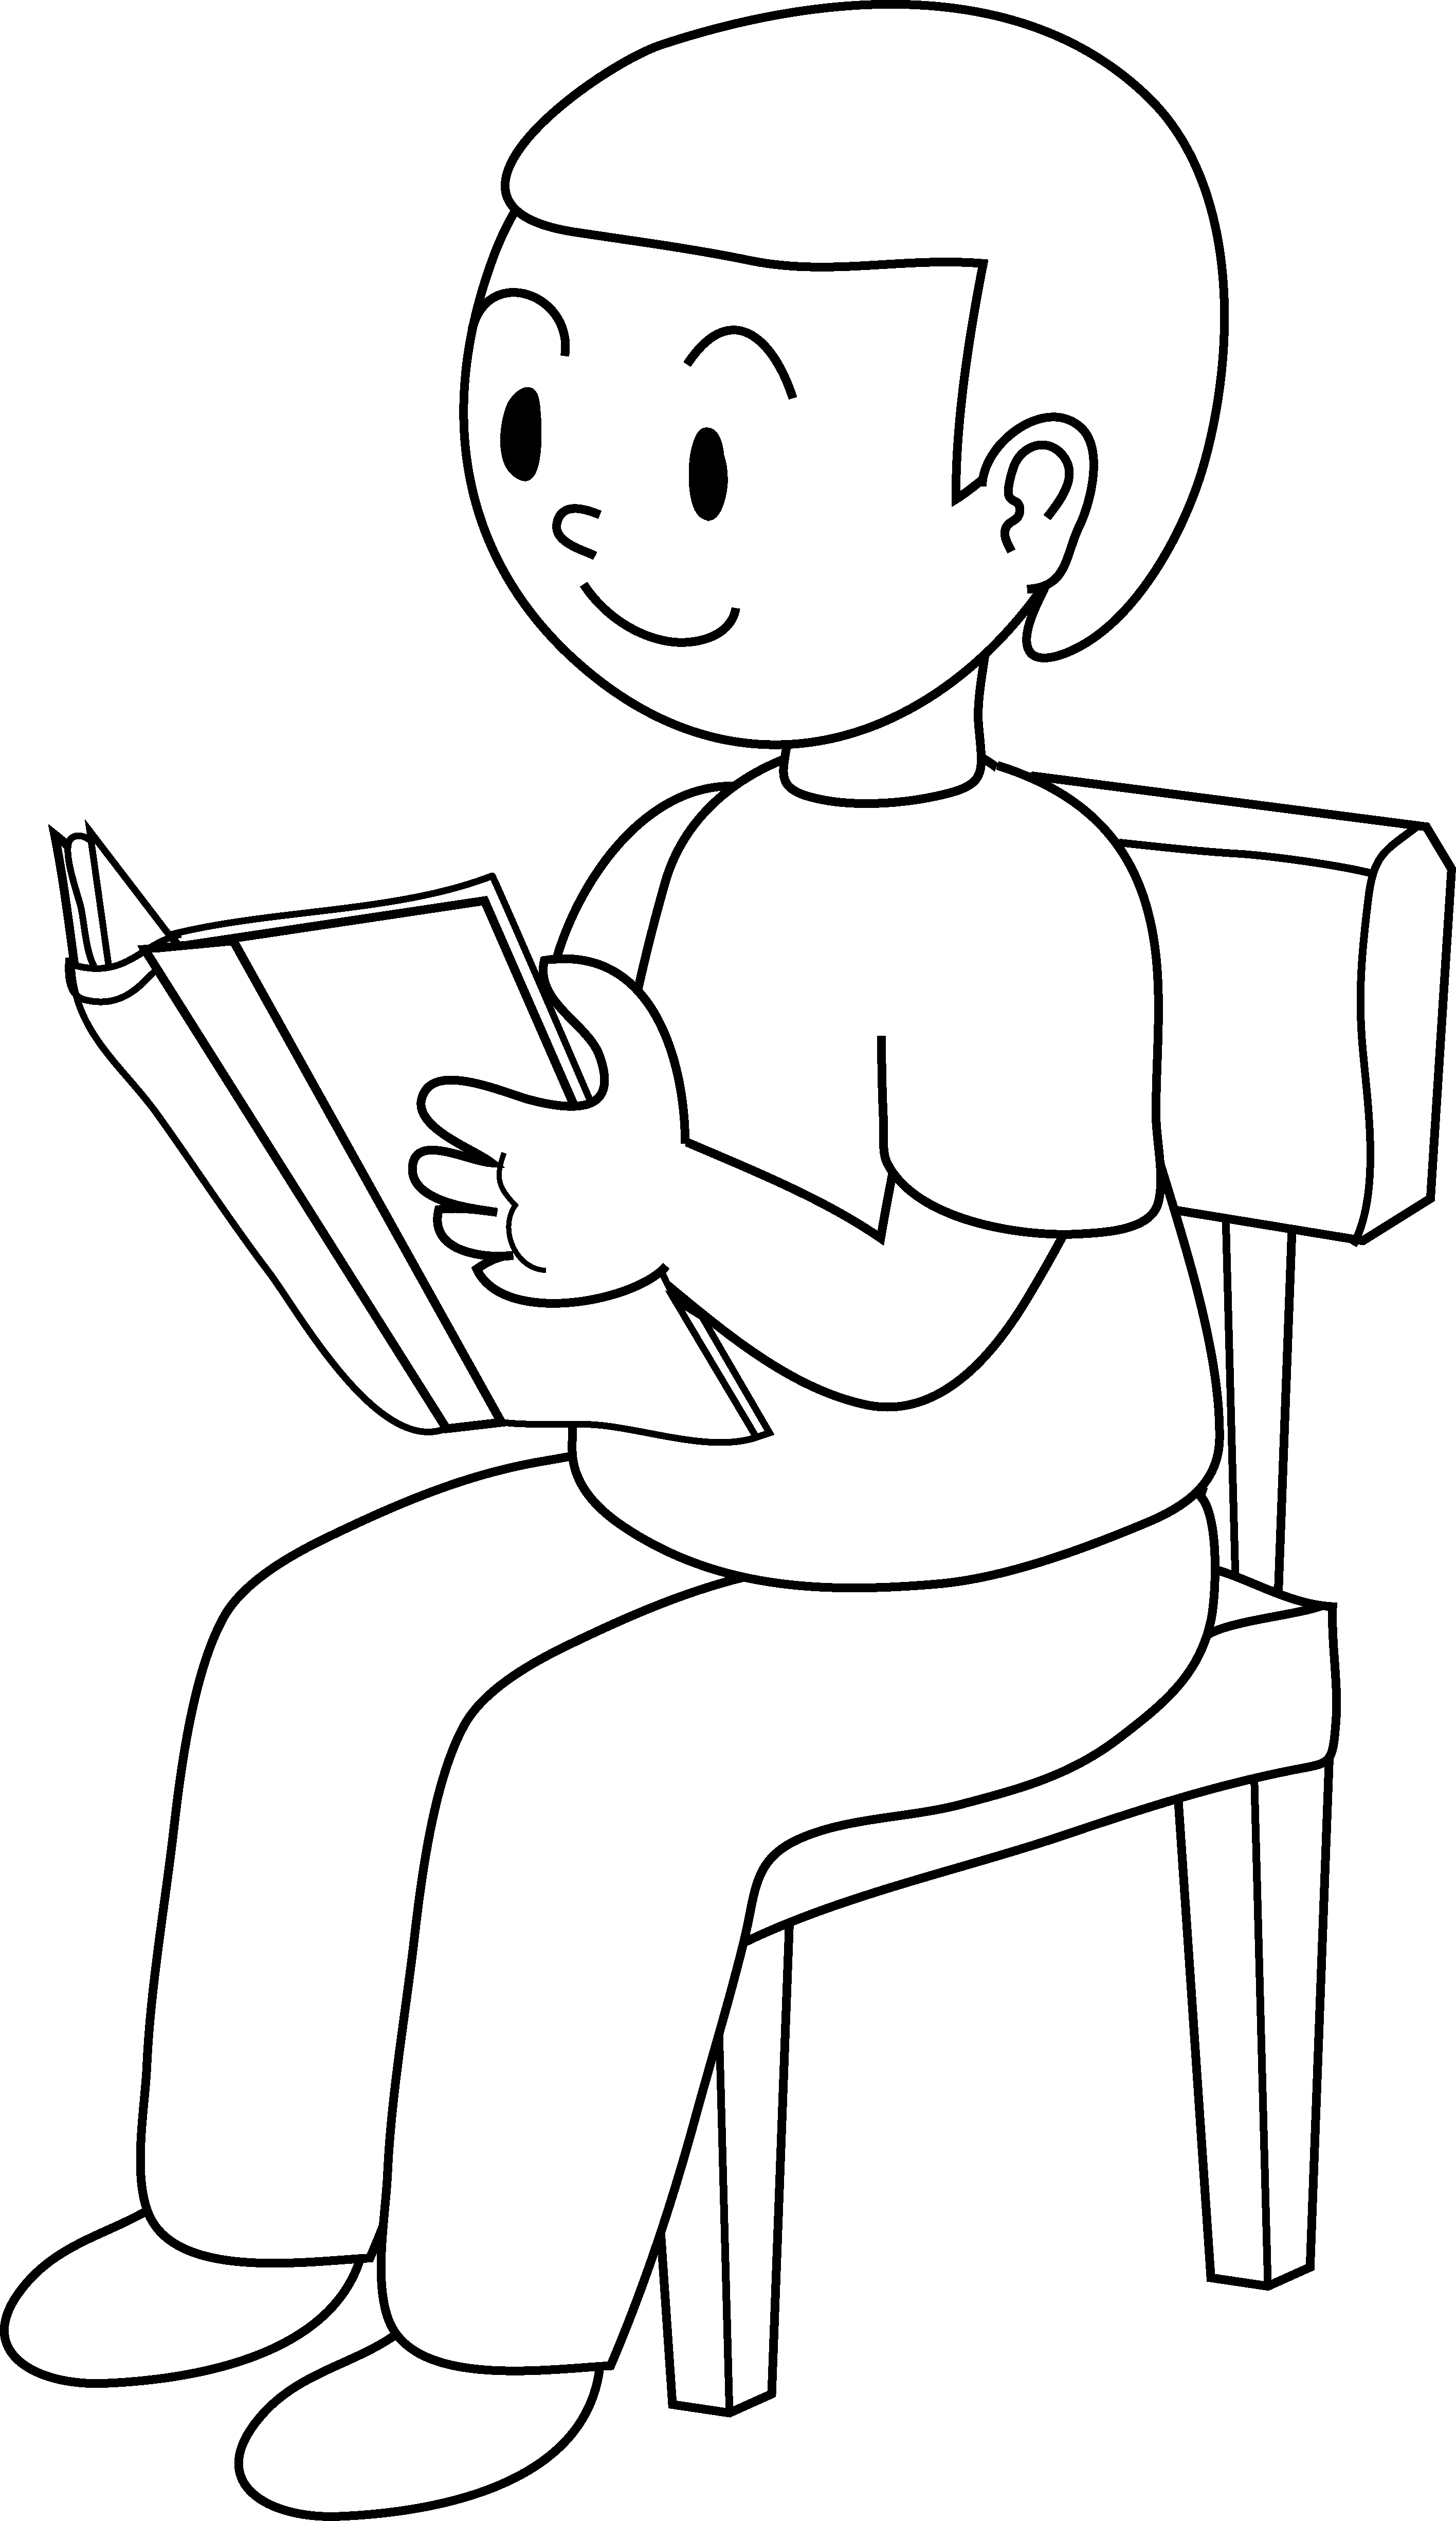 Sit clipart chair. Child sitting in clip